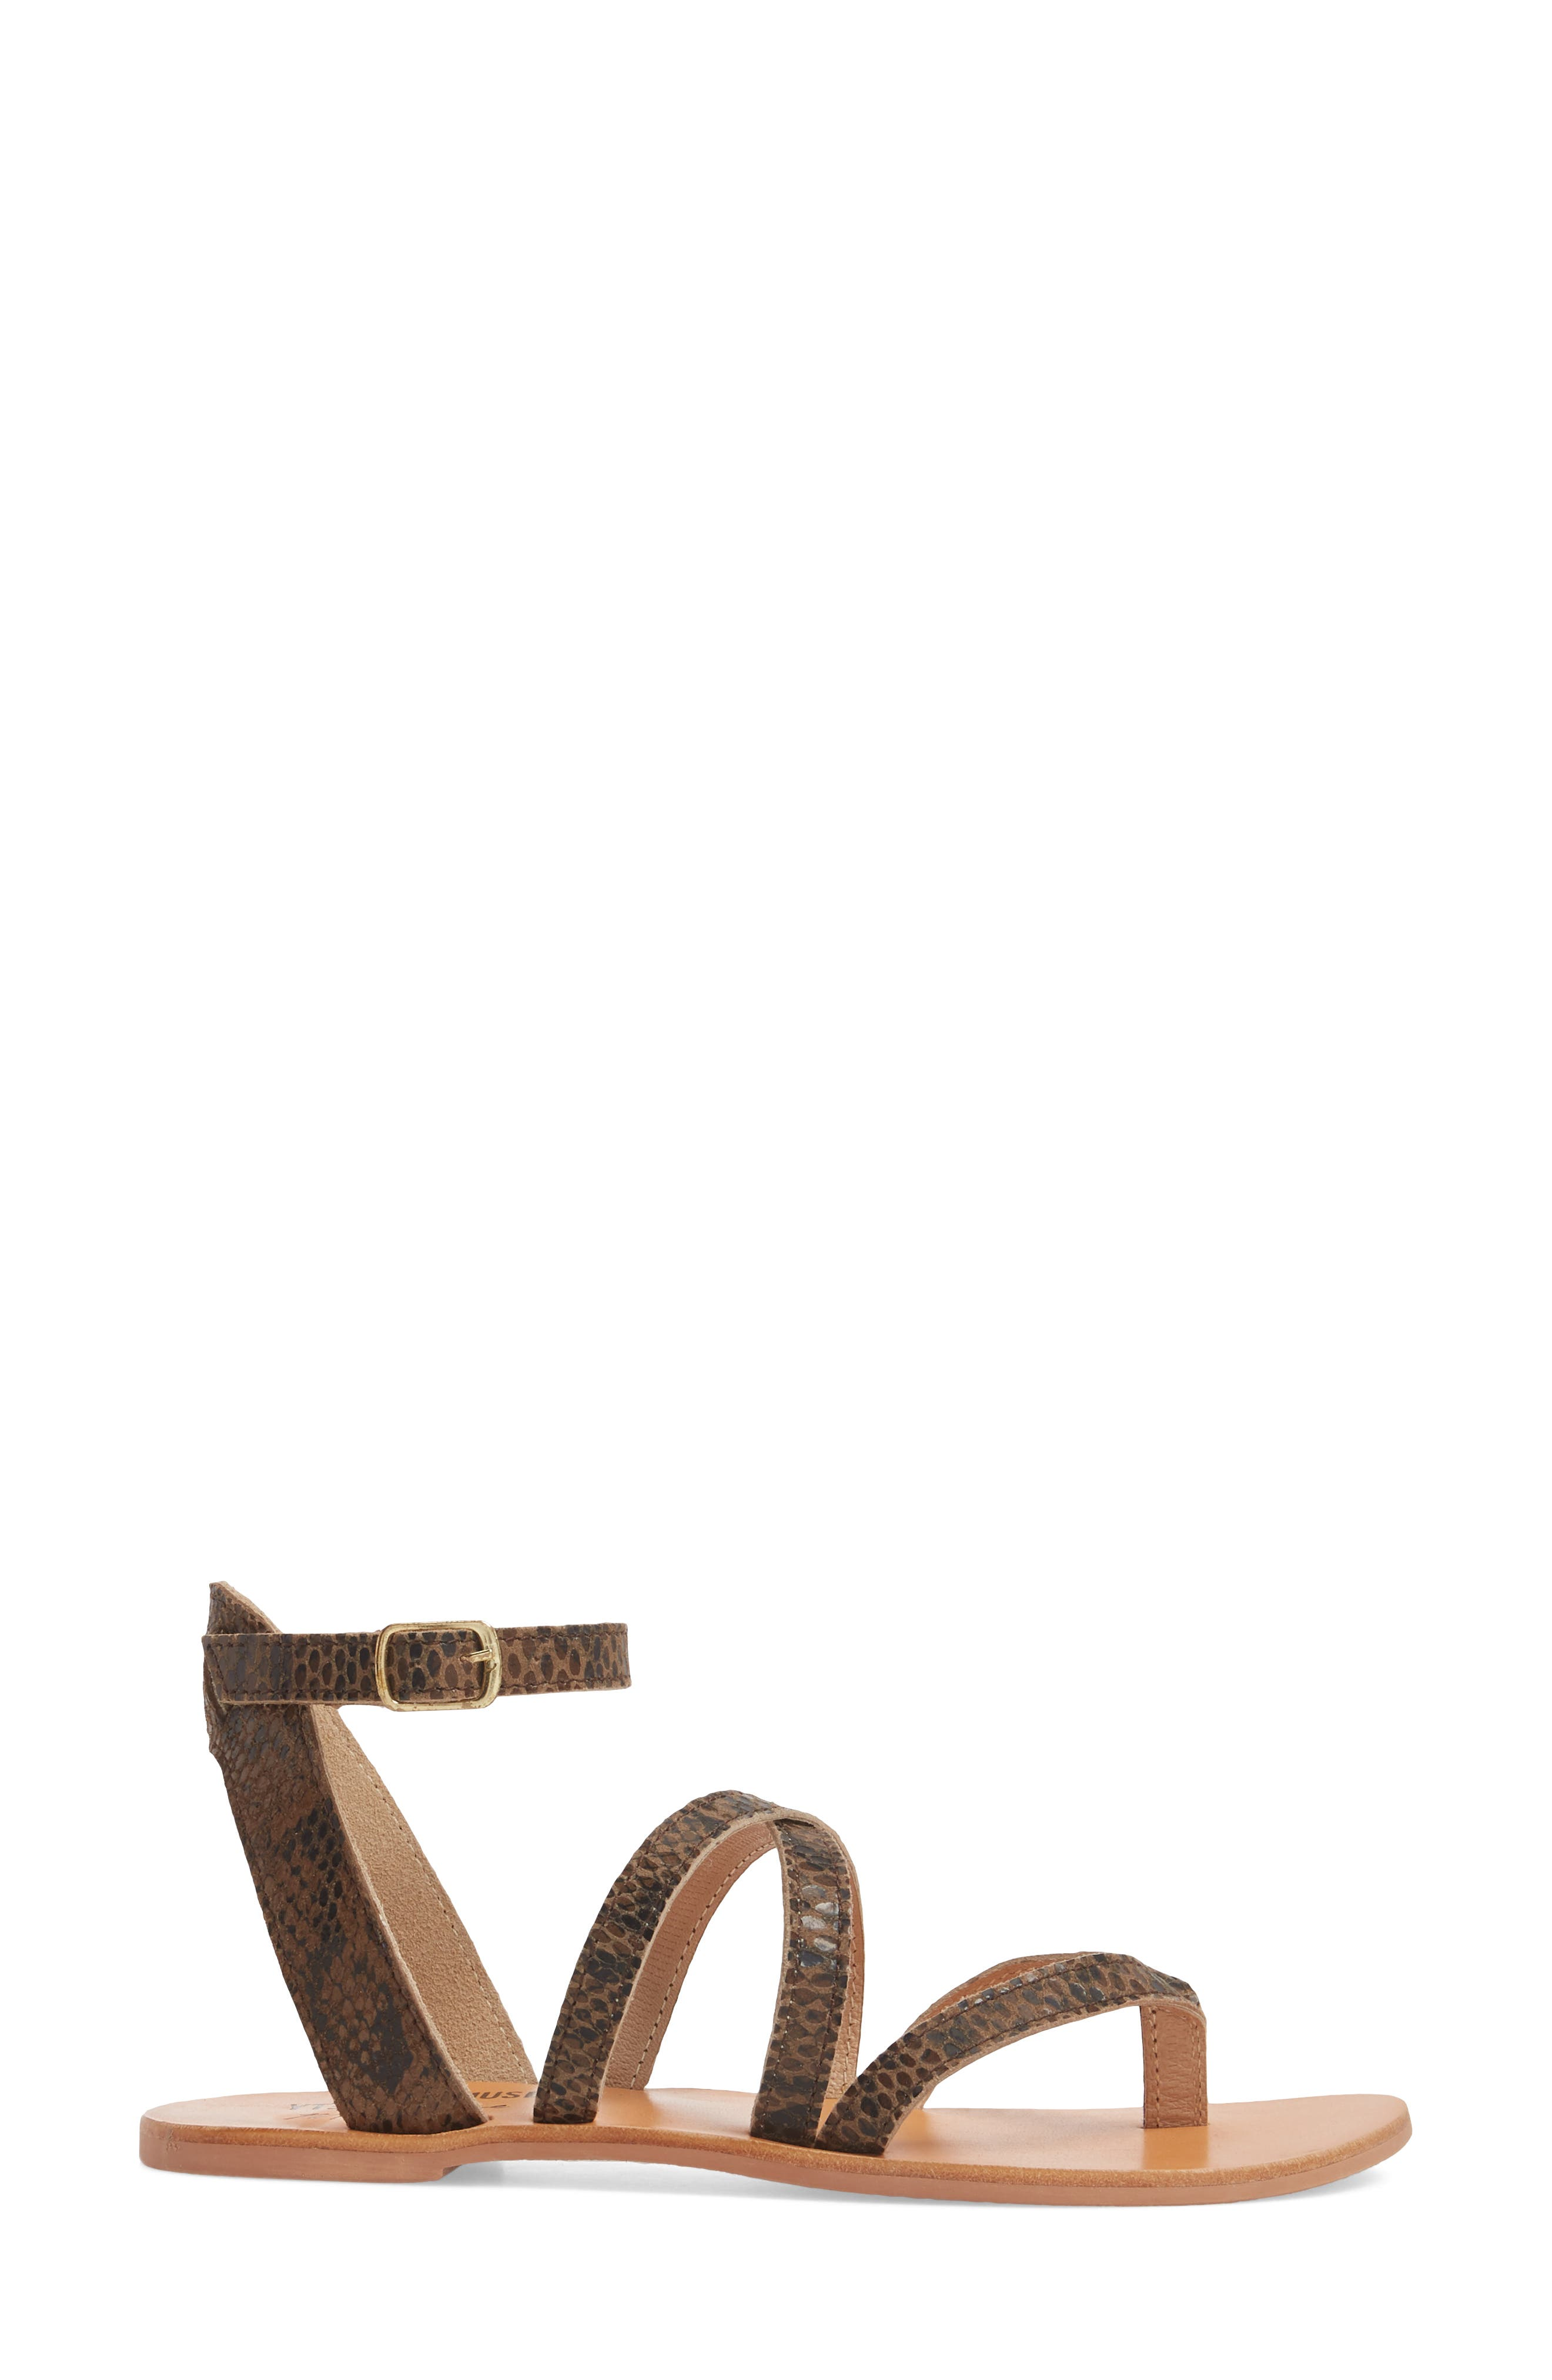 Strappy Sandal,                             Alternate thumbnail 3, color,                             Brown Snake Leather